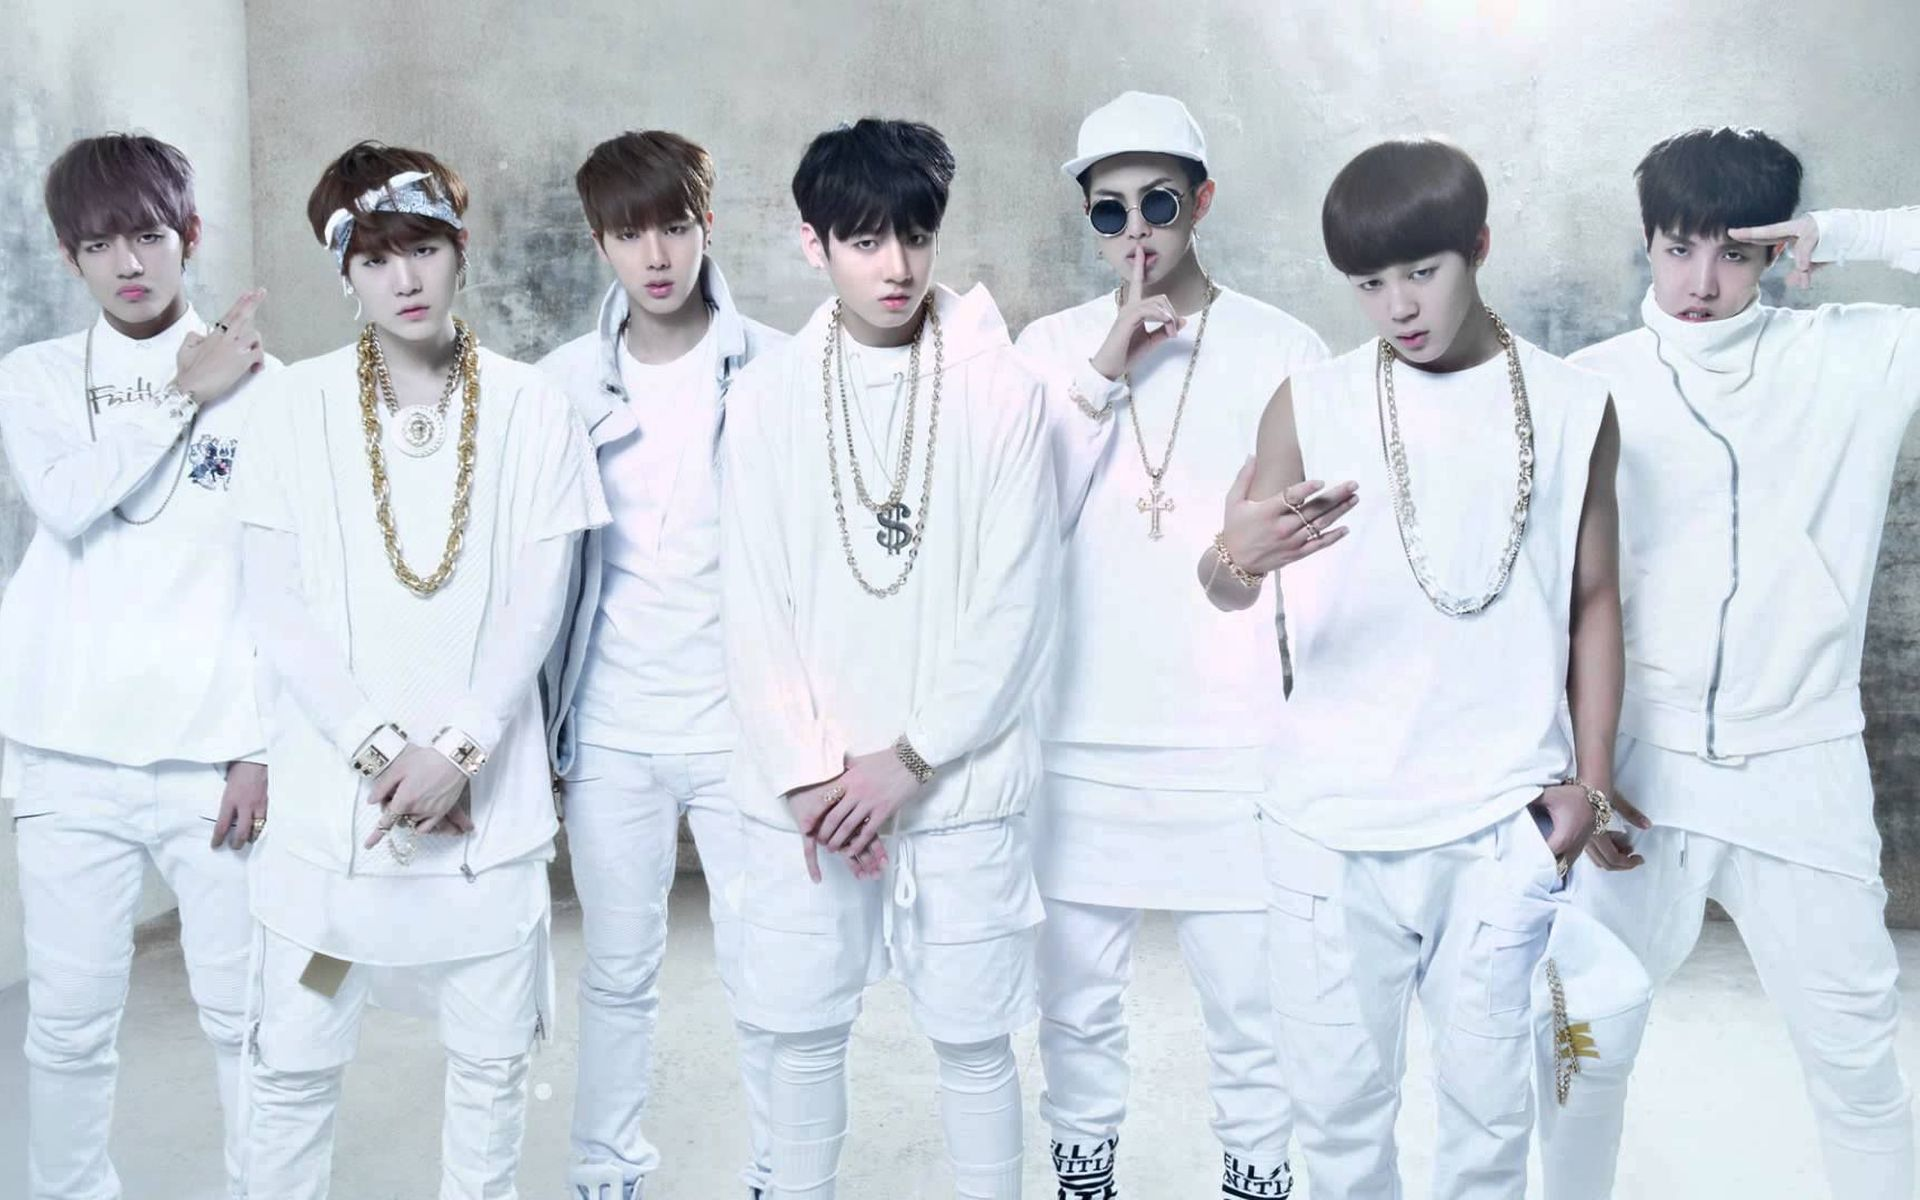 bts%20wallpaper%2037%20